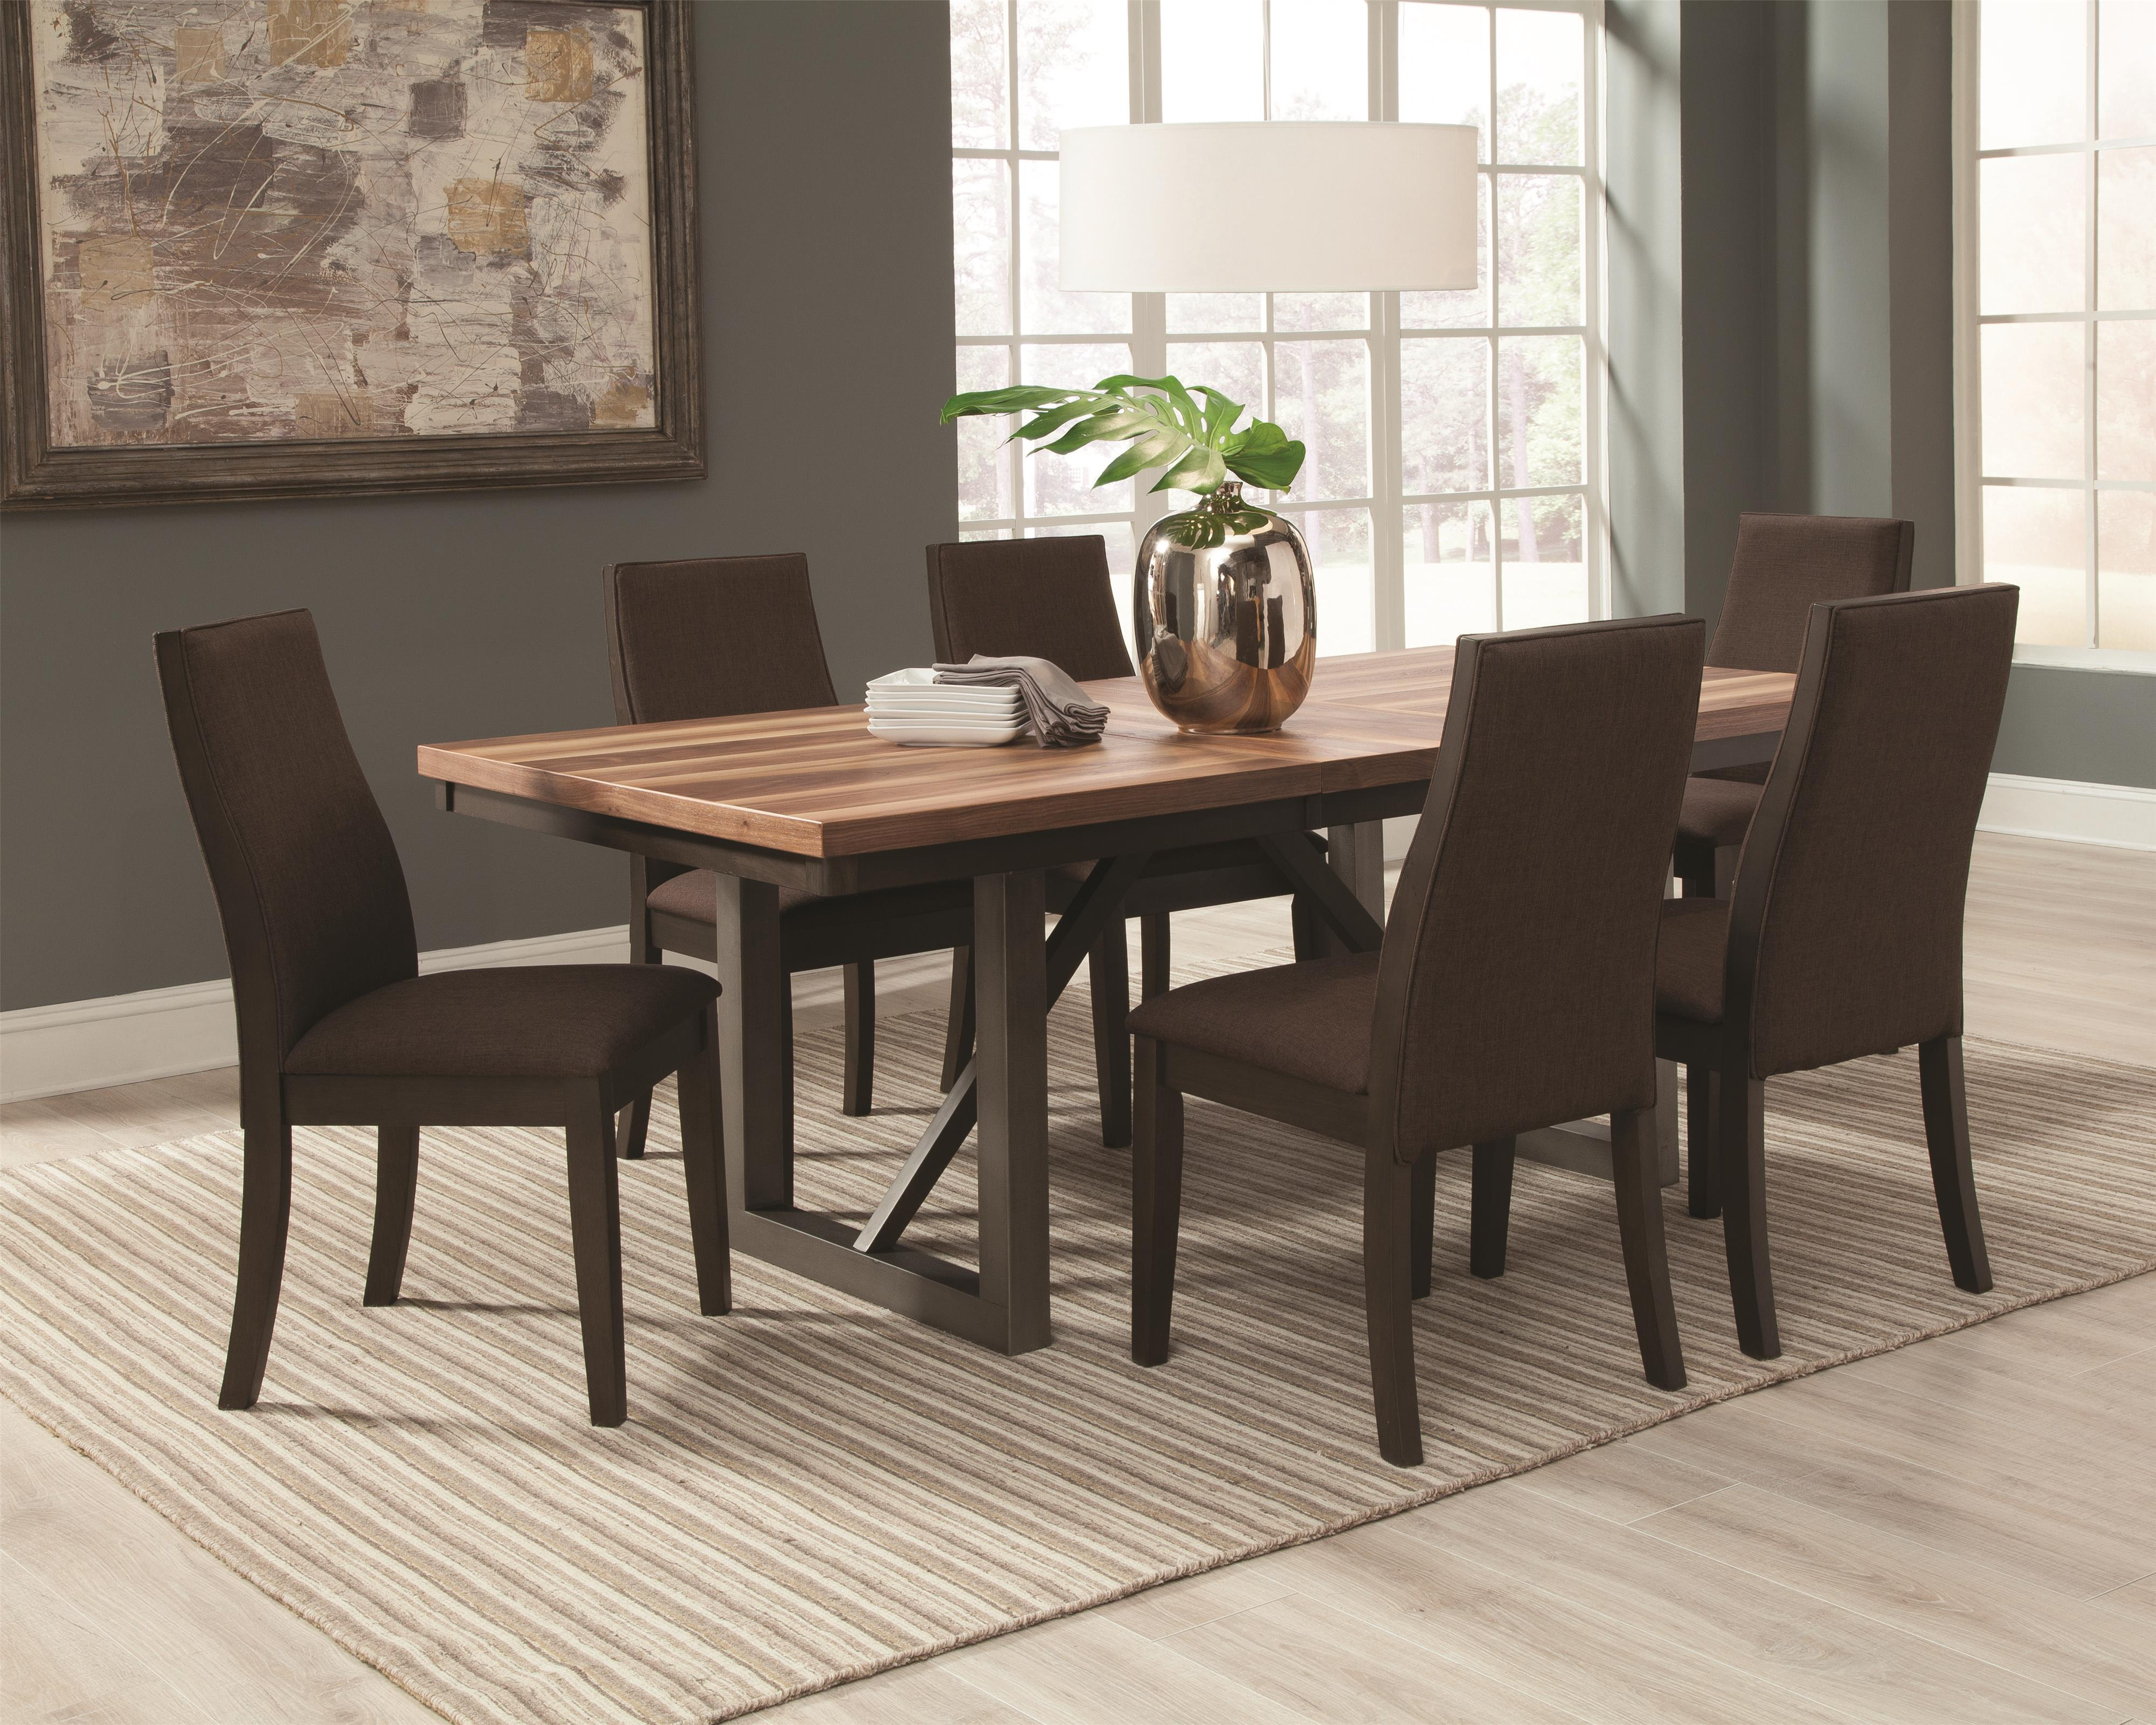 Spring Creek 7 Piece Table and Chairs Set by Coaster at Northeast Factory Direct